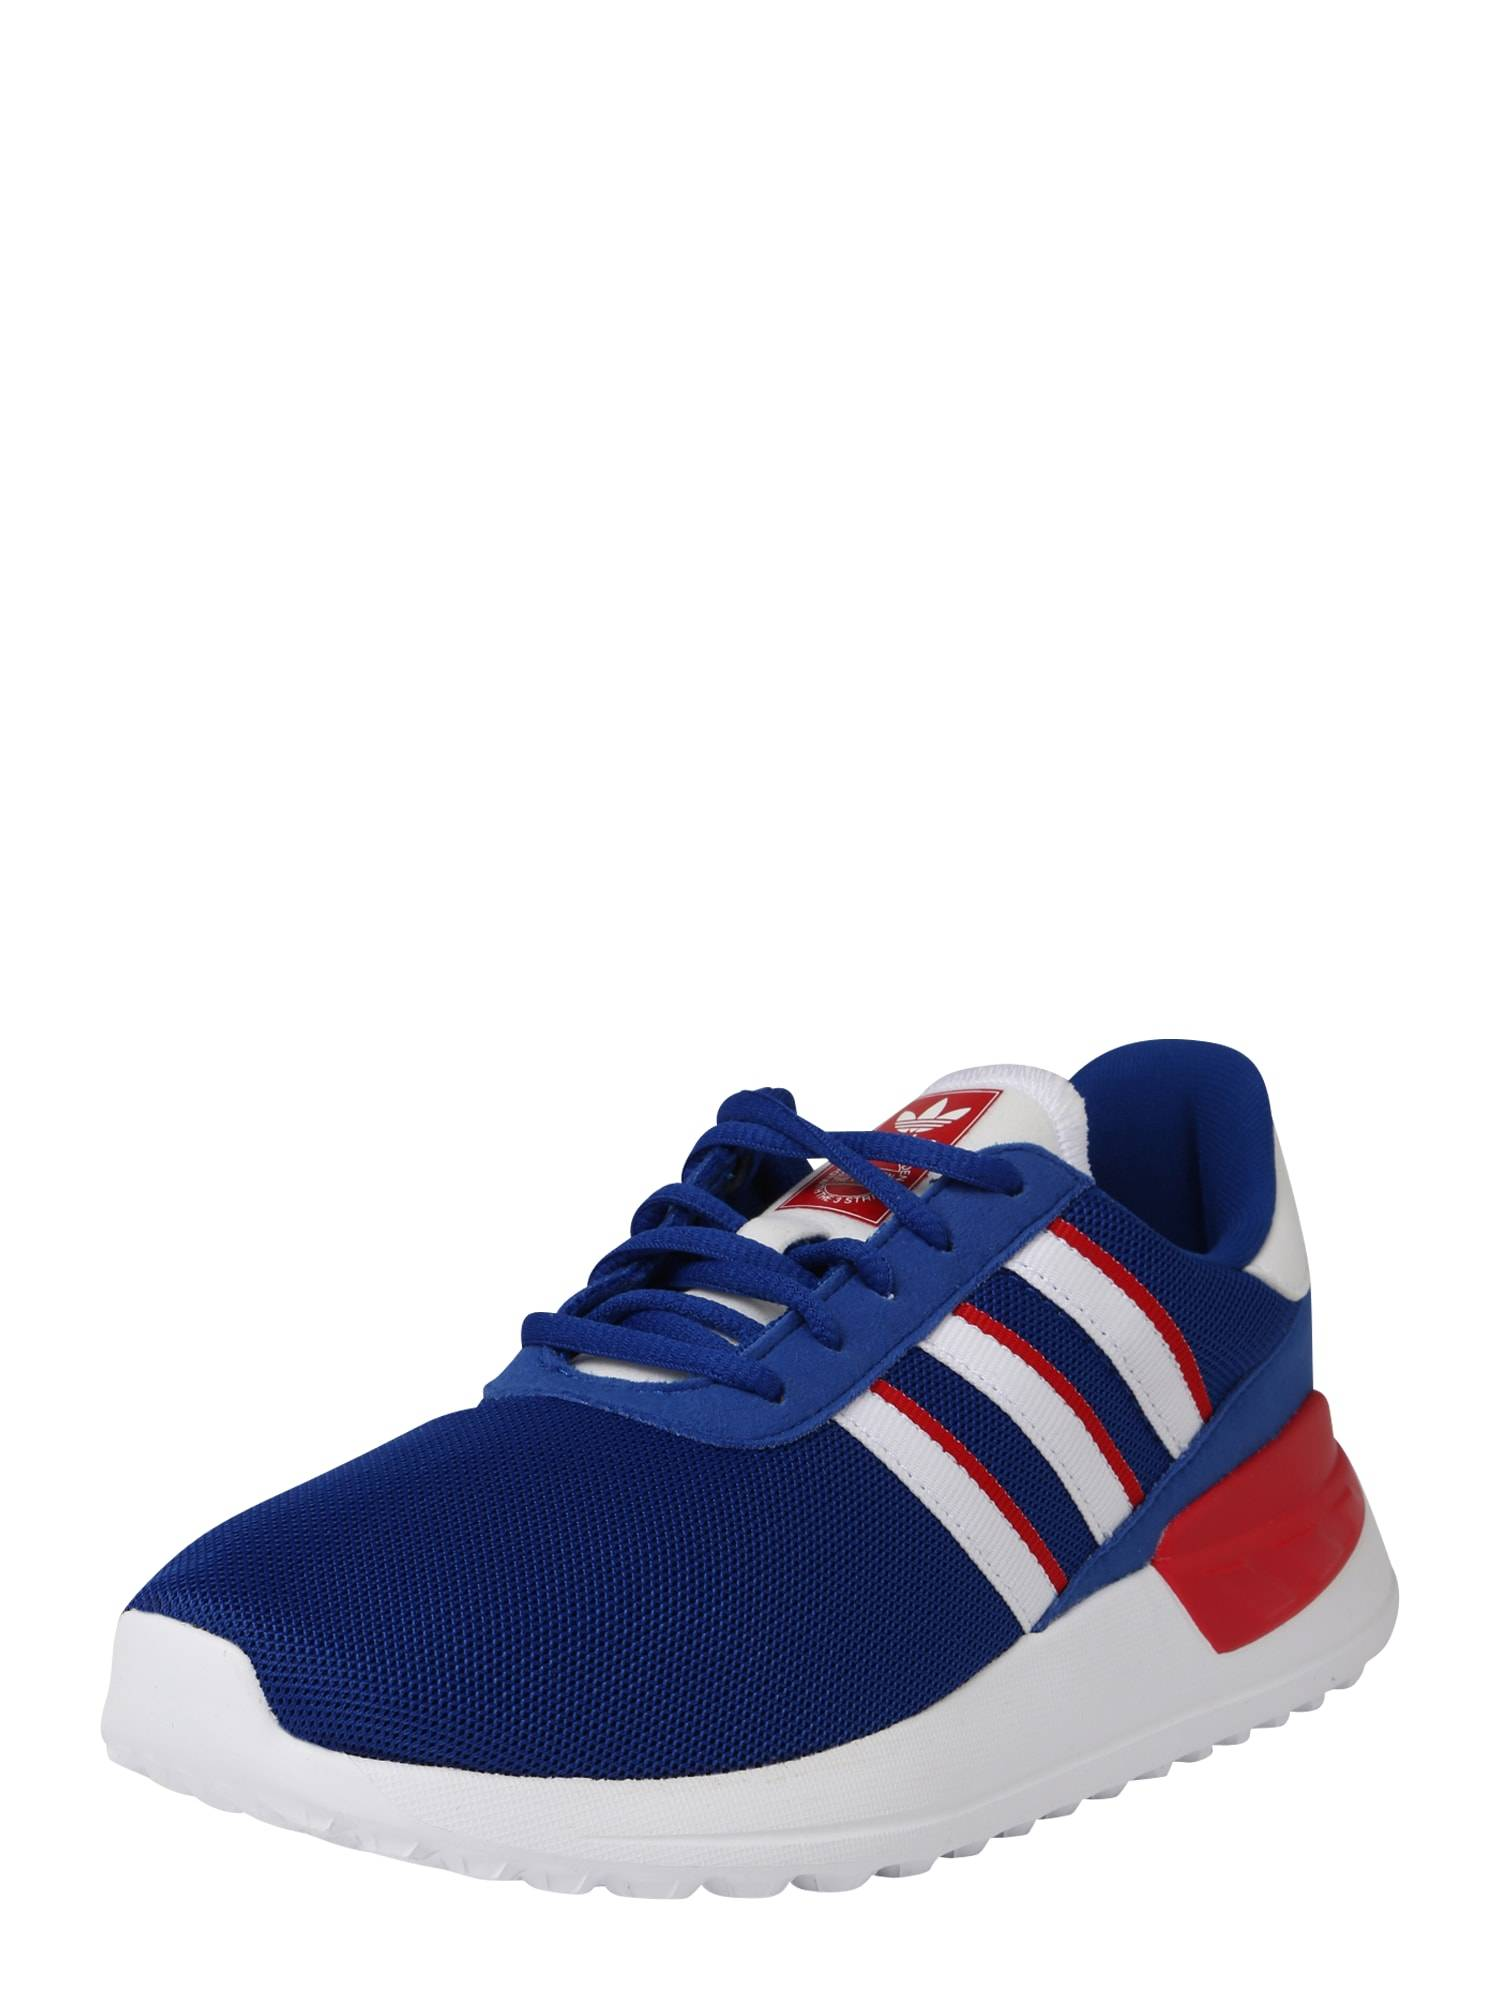 ADIDAS ORIGINALS Baskets 'LA TRAINER LITE C'  - Bleu - Taille: 33.5 - boy